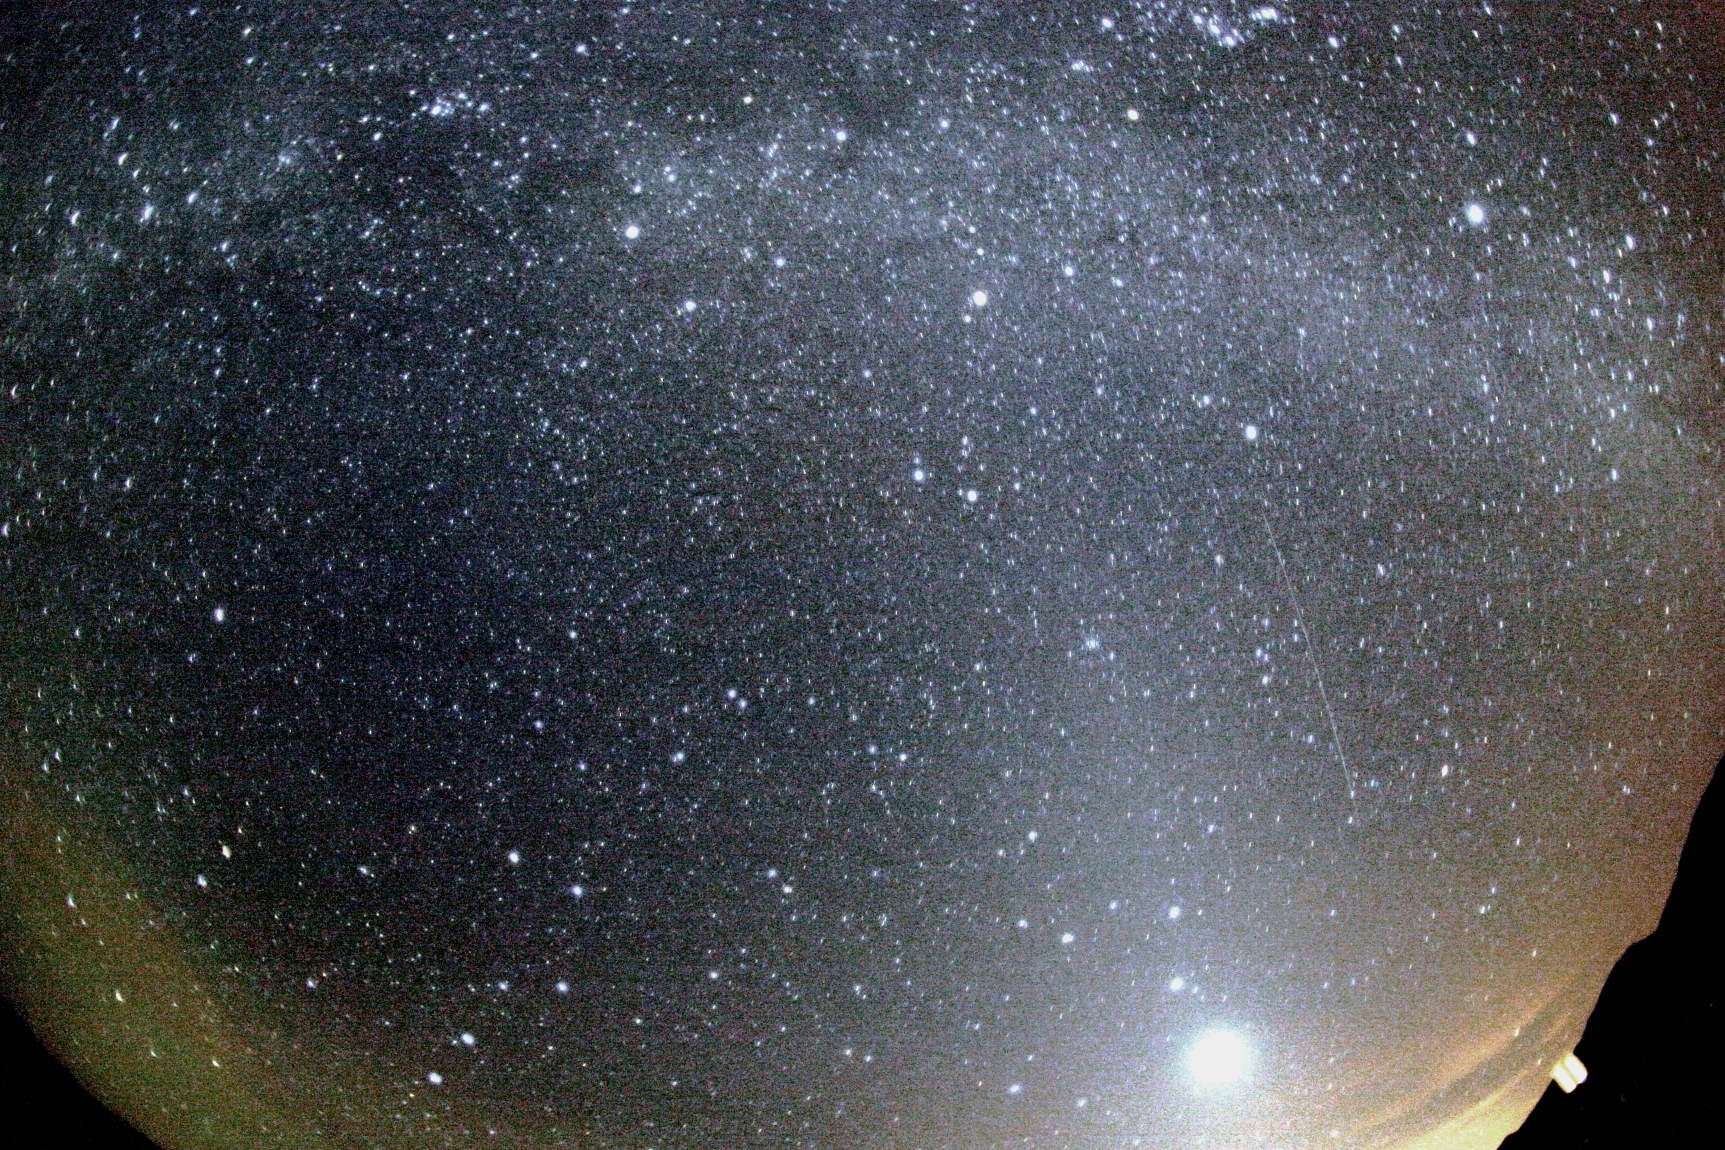 Orionid meteor shower to peak in coming days